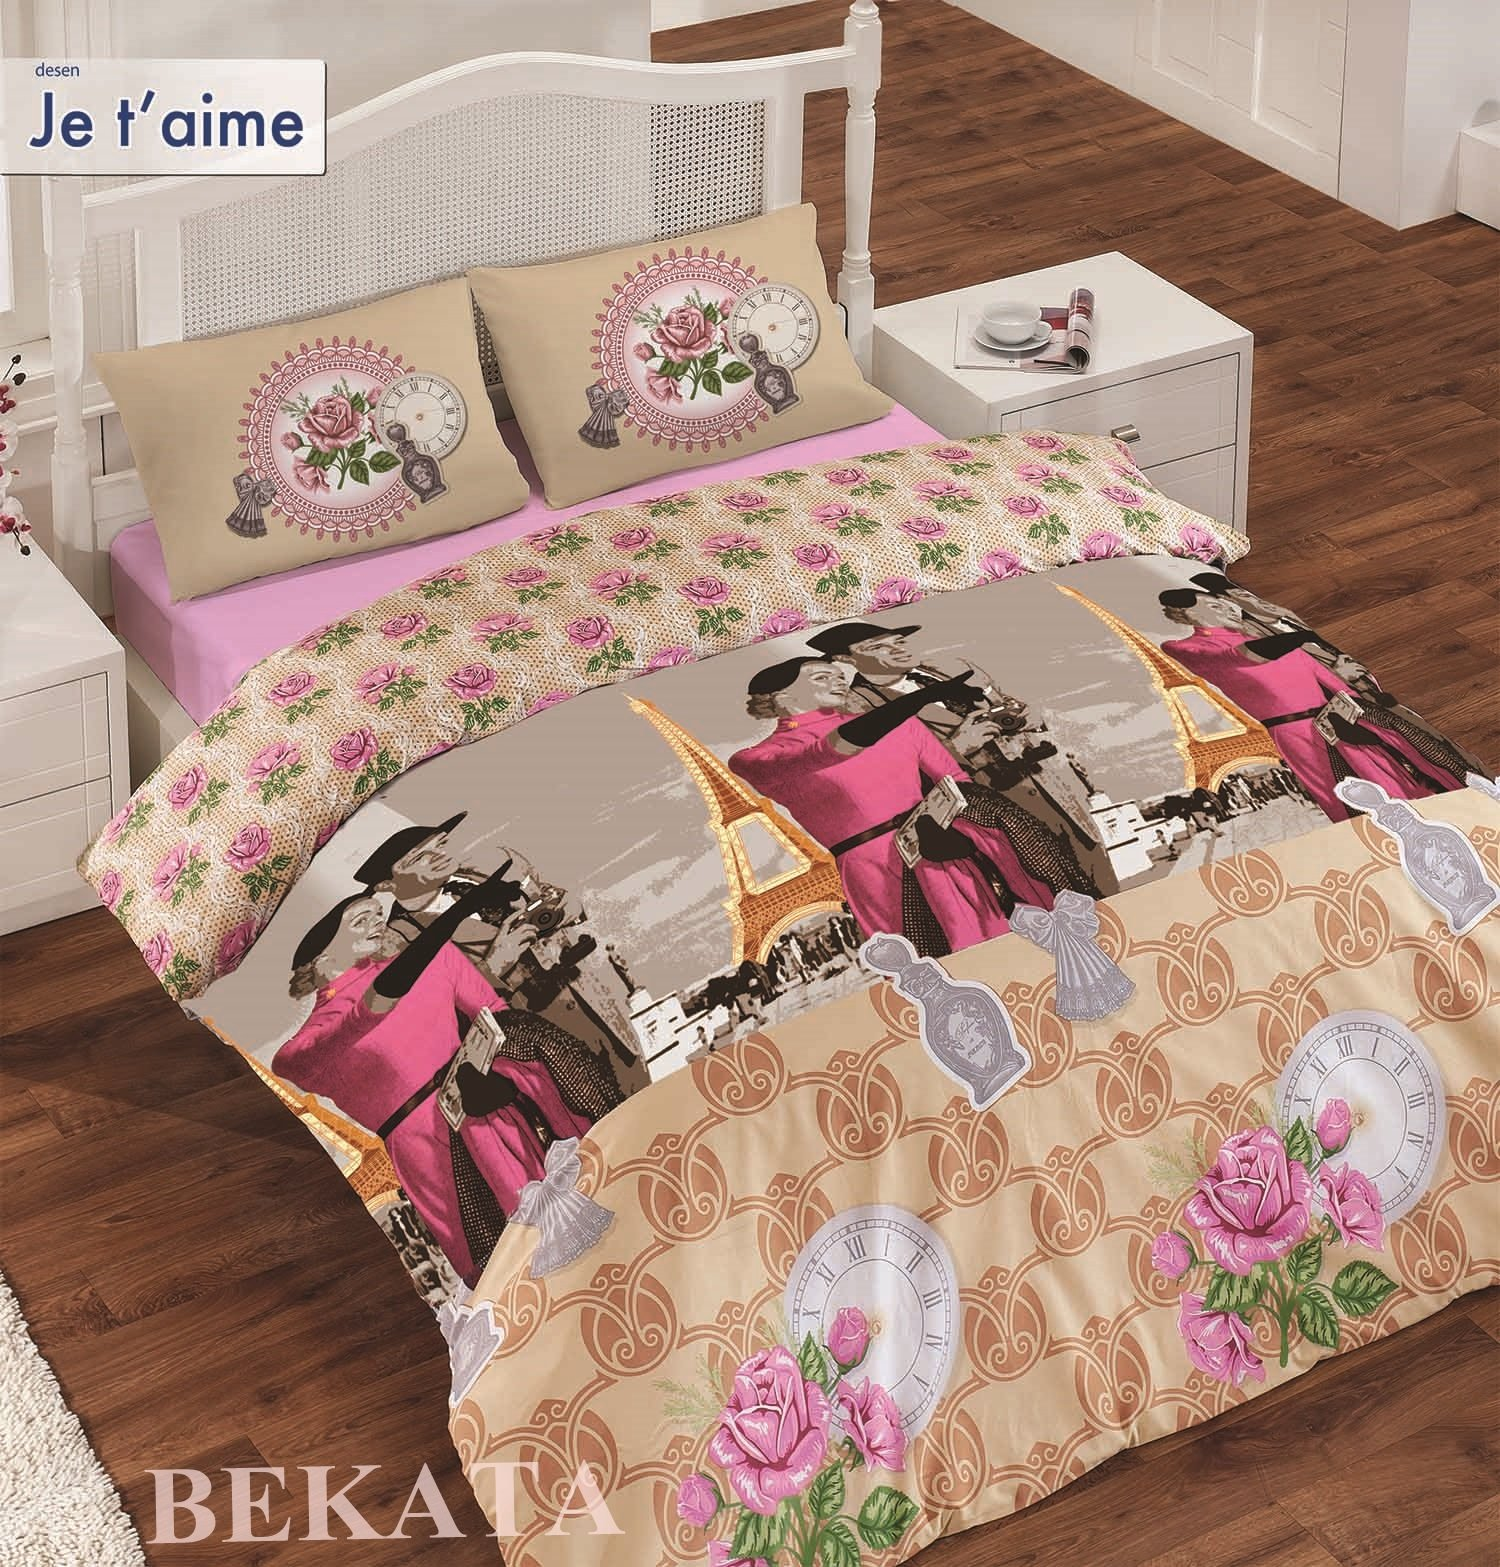 Vintage Paris Bedding Set, Eiffel Tower Themed Full/Queen Size Quilt/Duvet Cover Set, 100 Percent Cotton, 4 PCS, Casablanca Movie